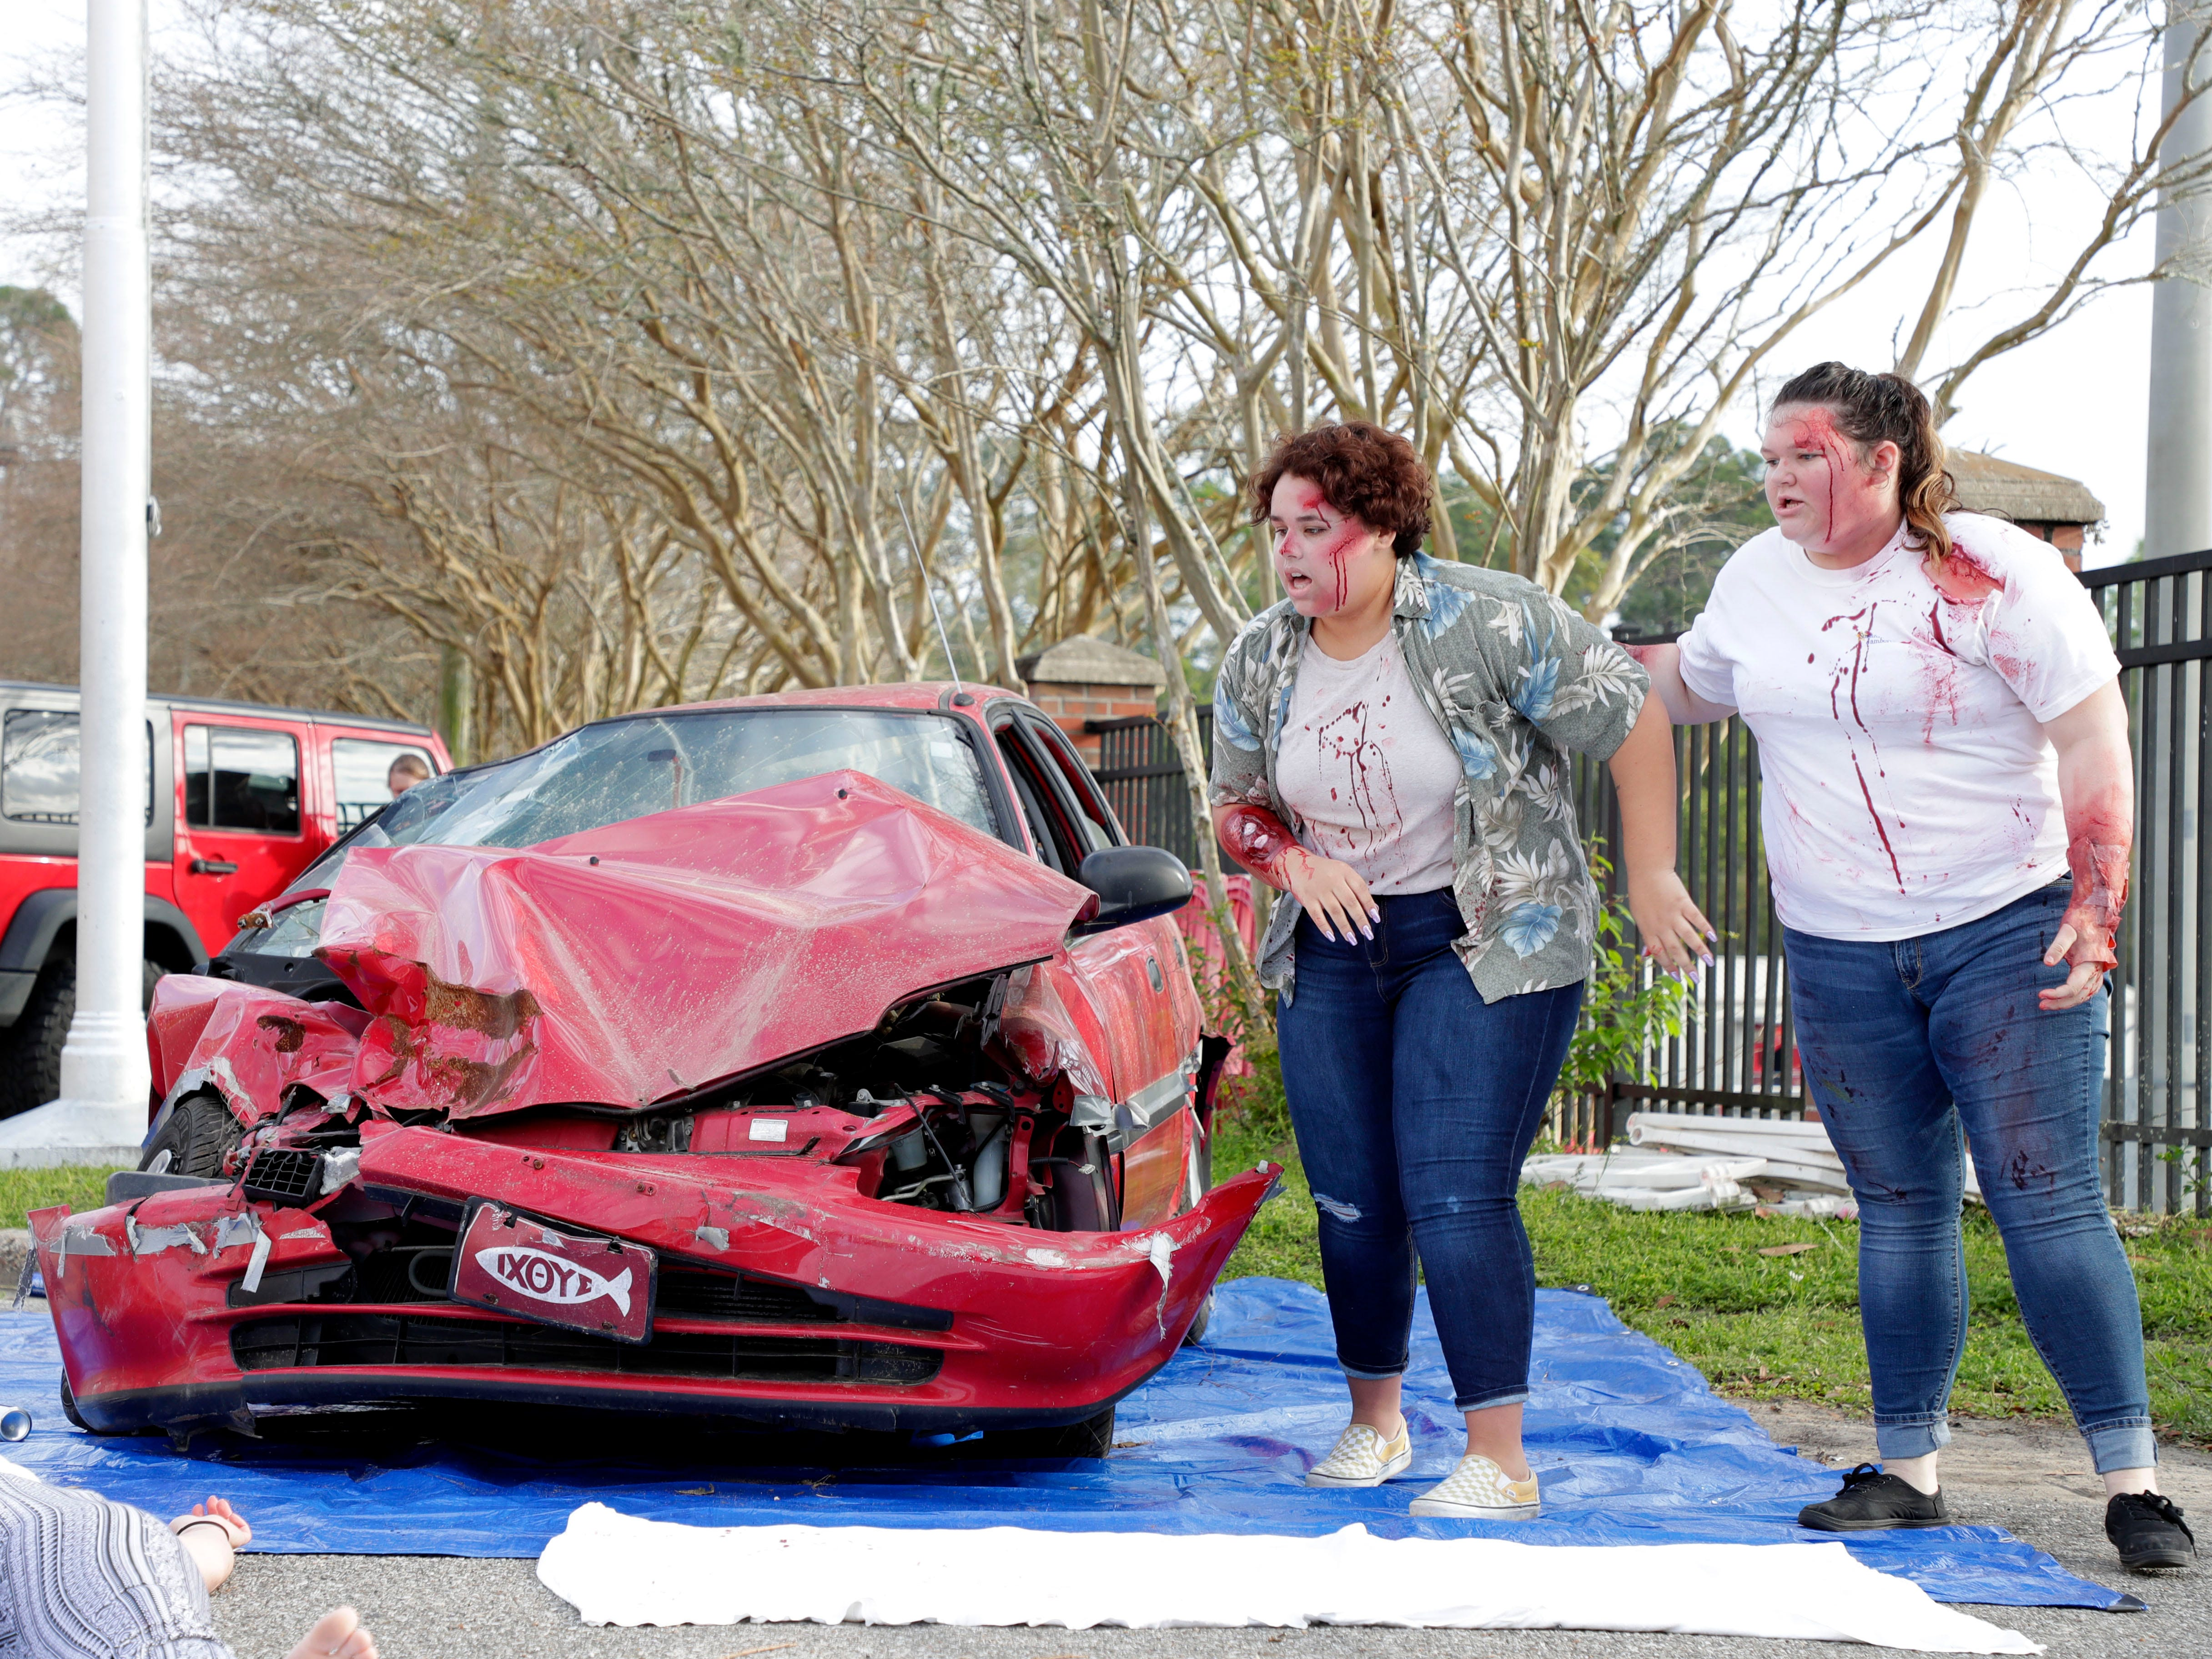 Mia Ford-Green, left, and Caitlyn Burke run to check on their friend as they portray teens involved in a drinking and driving accident. Leon High School partners with the county safety officials to give a simulation on the consequences of drunk driving before the students leave for spring break Friday, March 15, 2019.